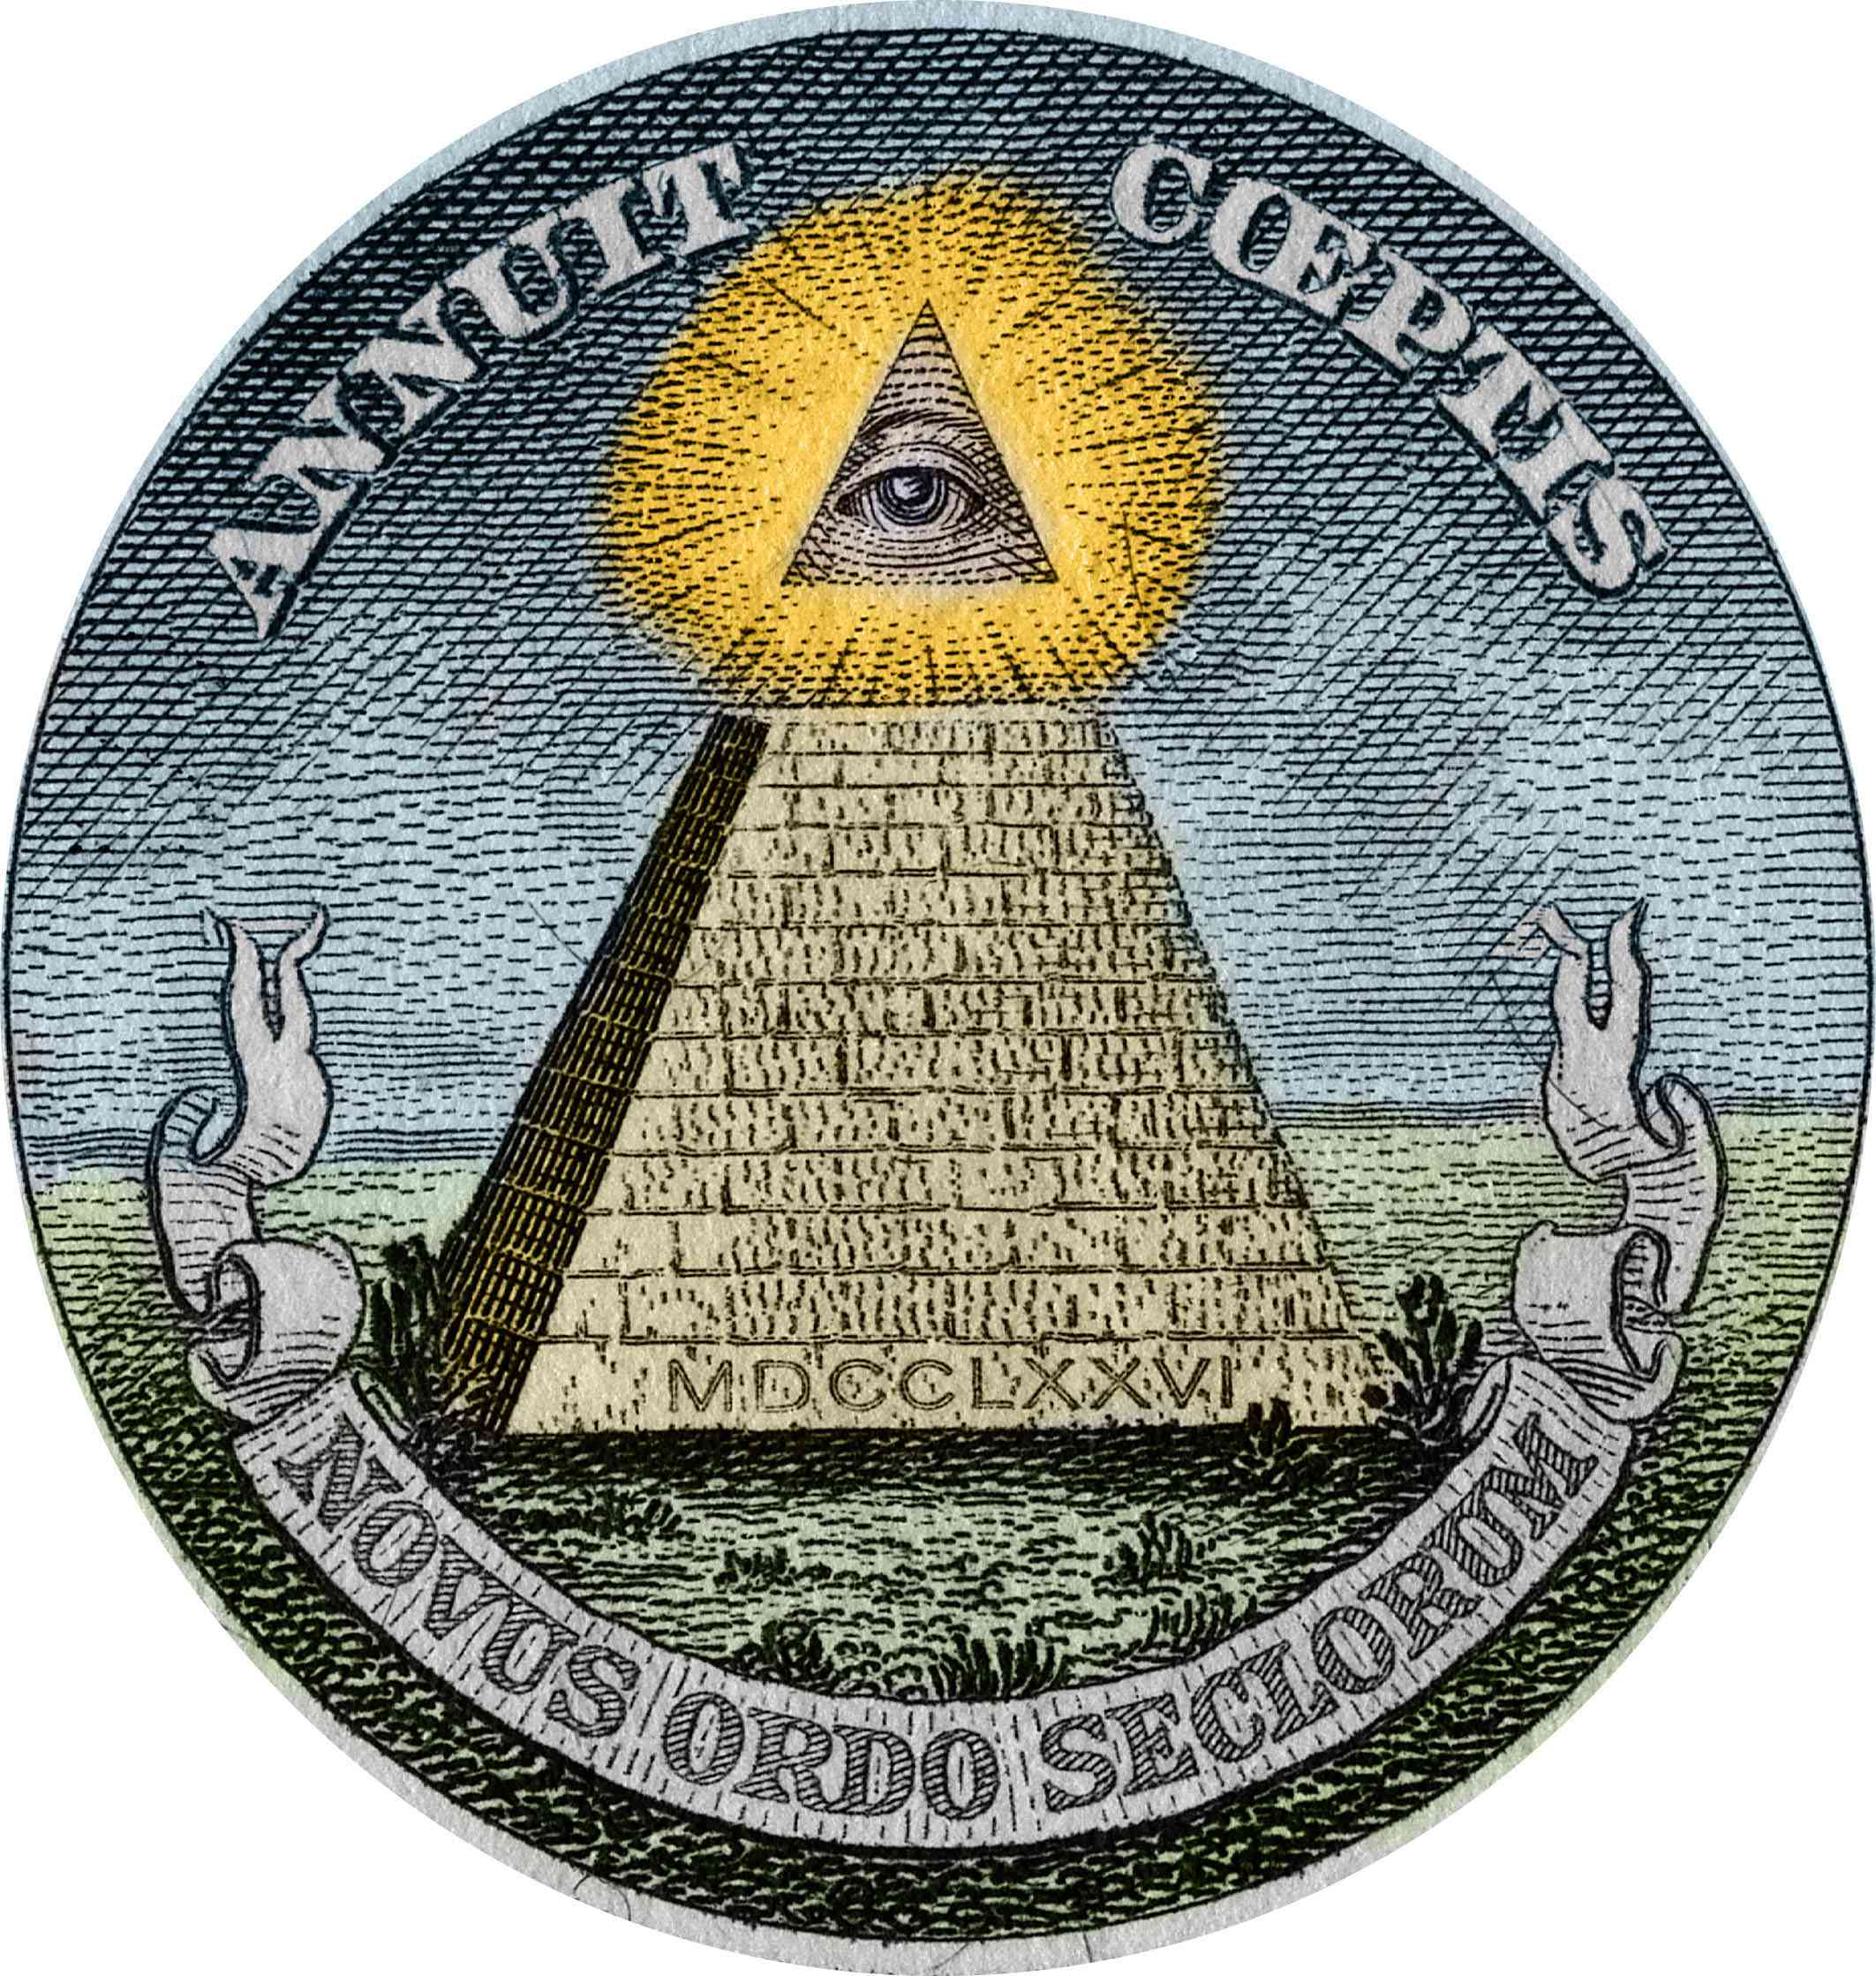 The pyramid and the all-seeing eye, symbols used in the Great Seal of the United States